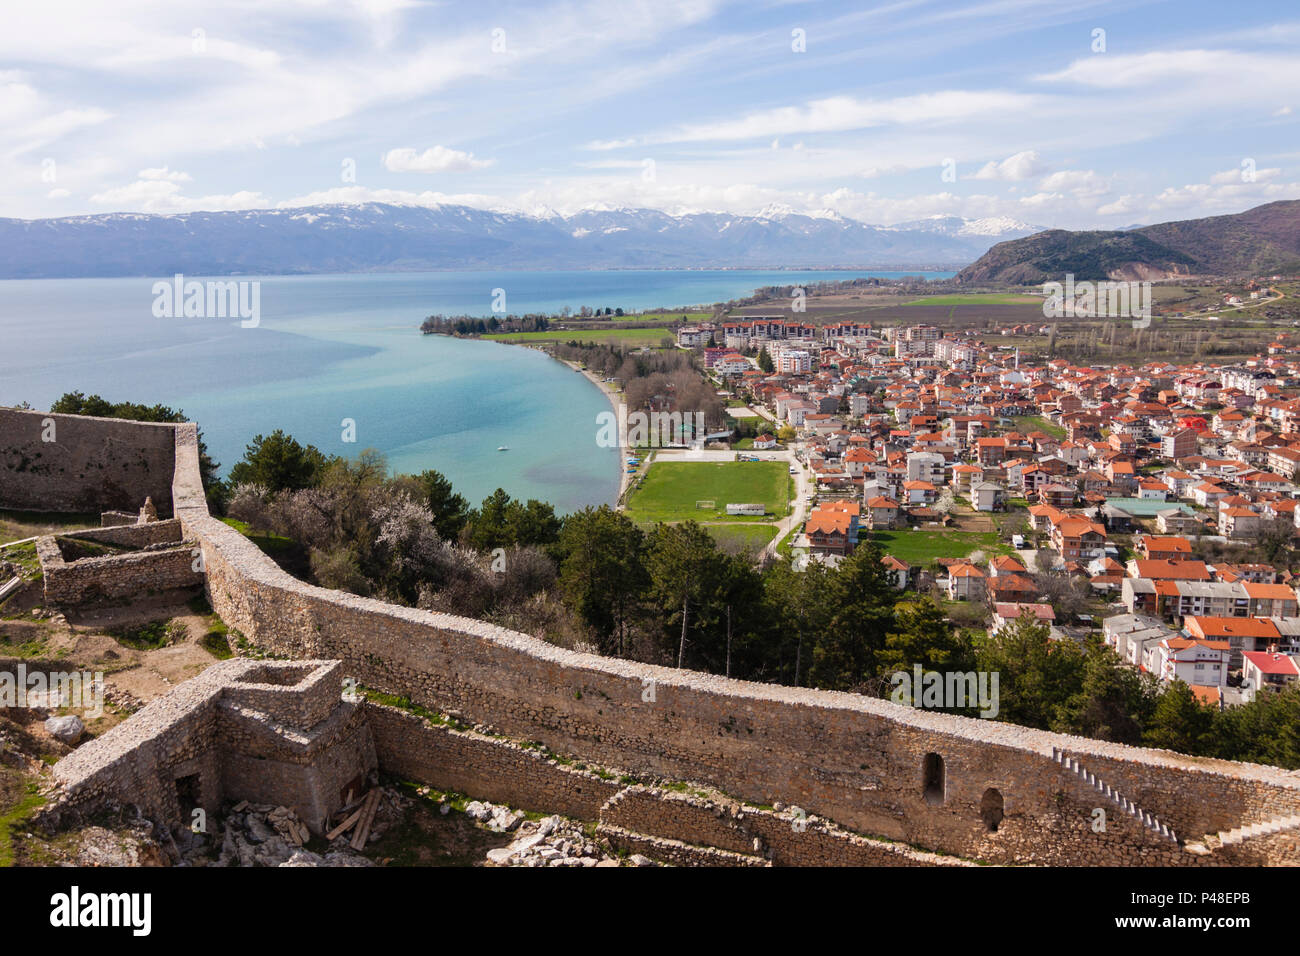 Ohrid, Republic of Macedonia : Overview of the Unesco listed Ohrid old town and lake as seen from Samuel's Fortress. Built on the site of an earlier 4 - Stock Image